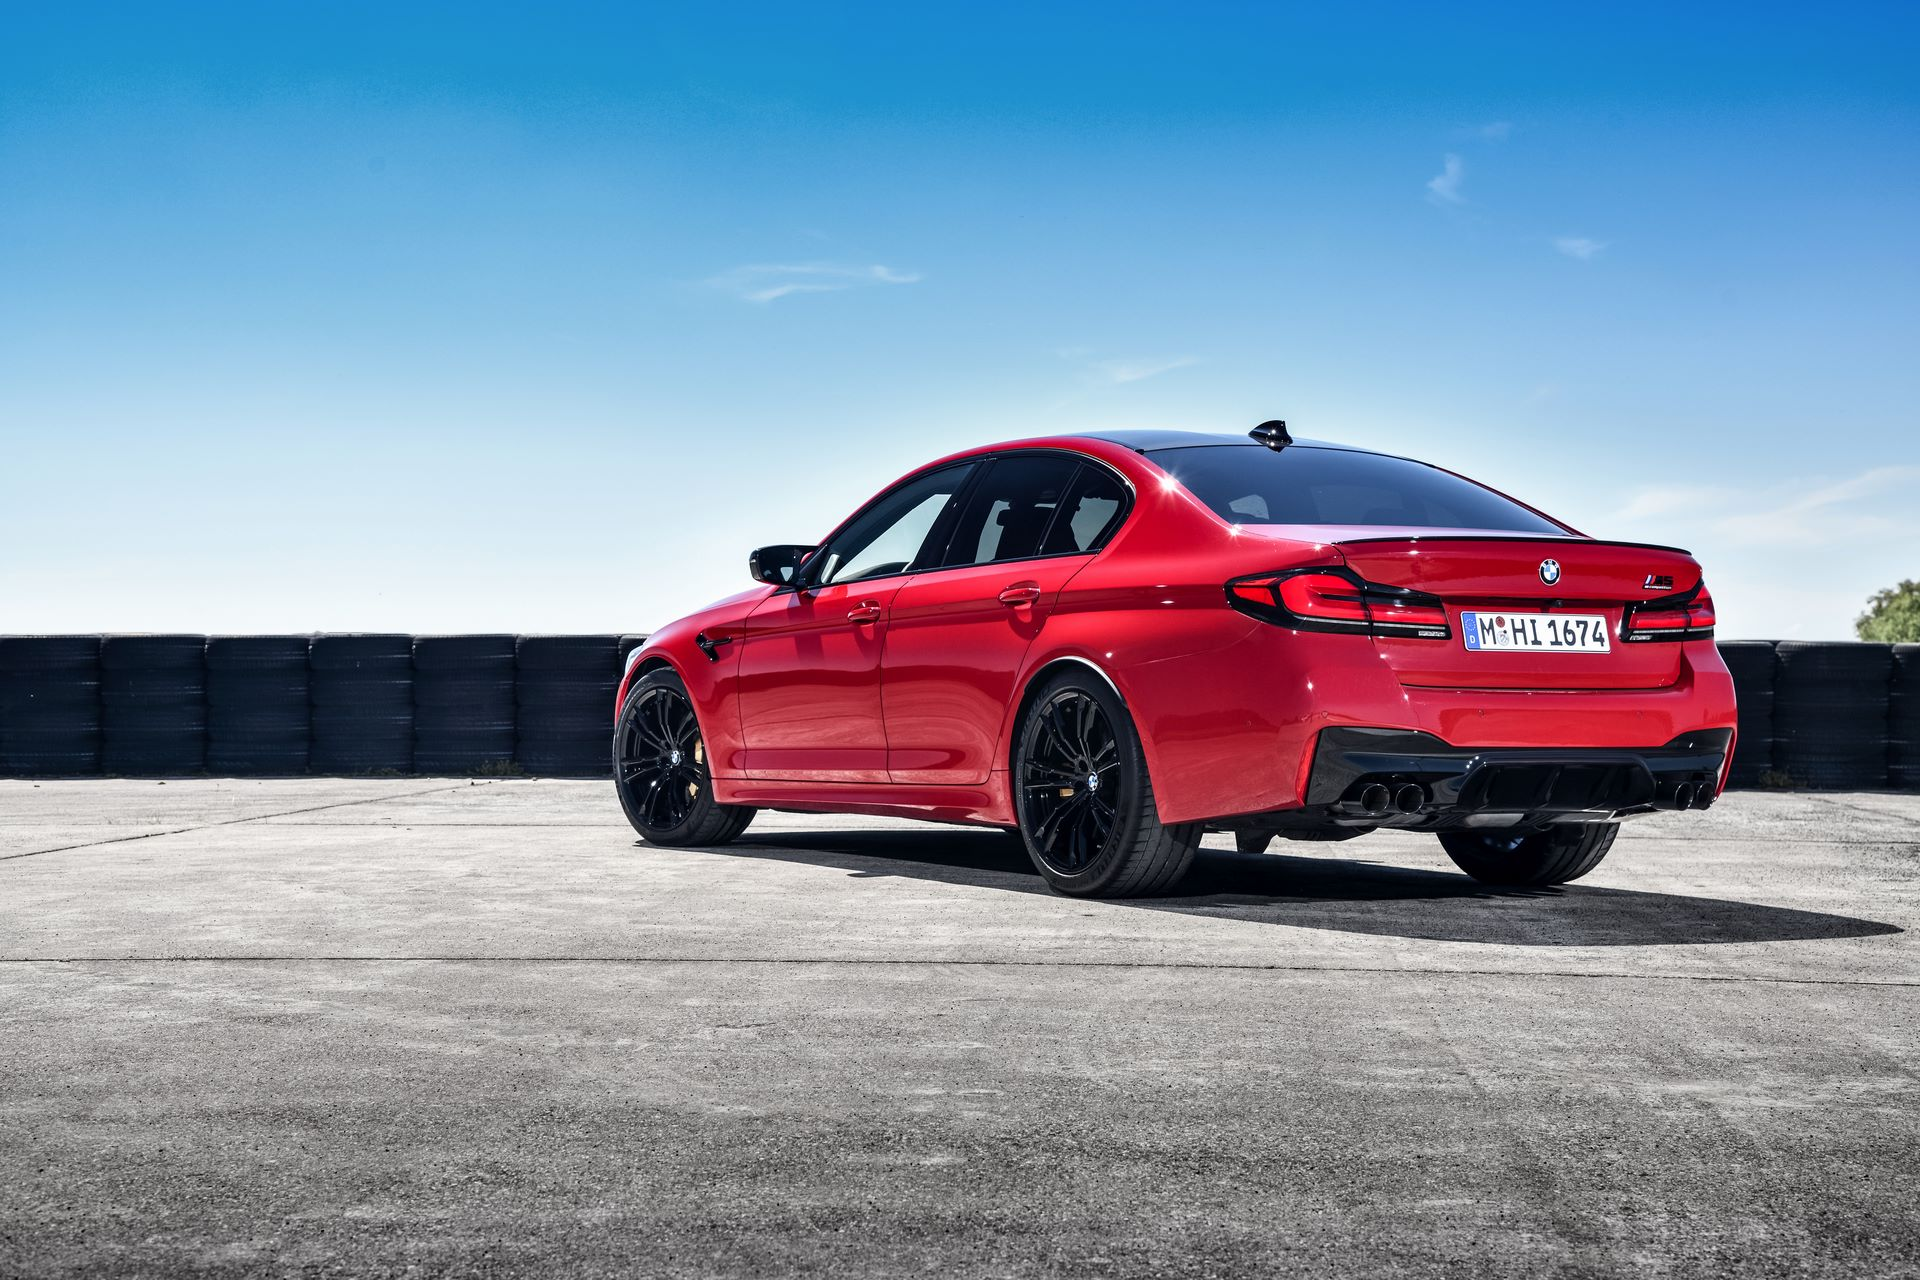 BMW-M5-and-BMW-M5-Competition-facelift-2020-25